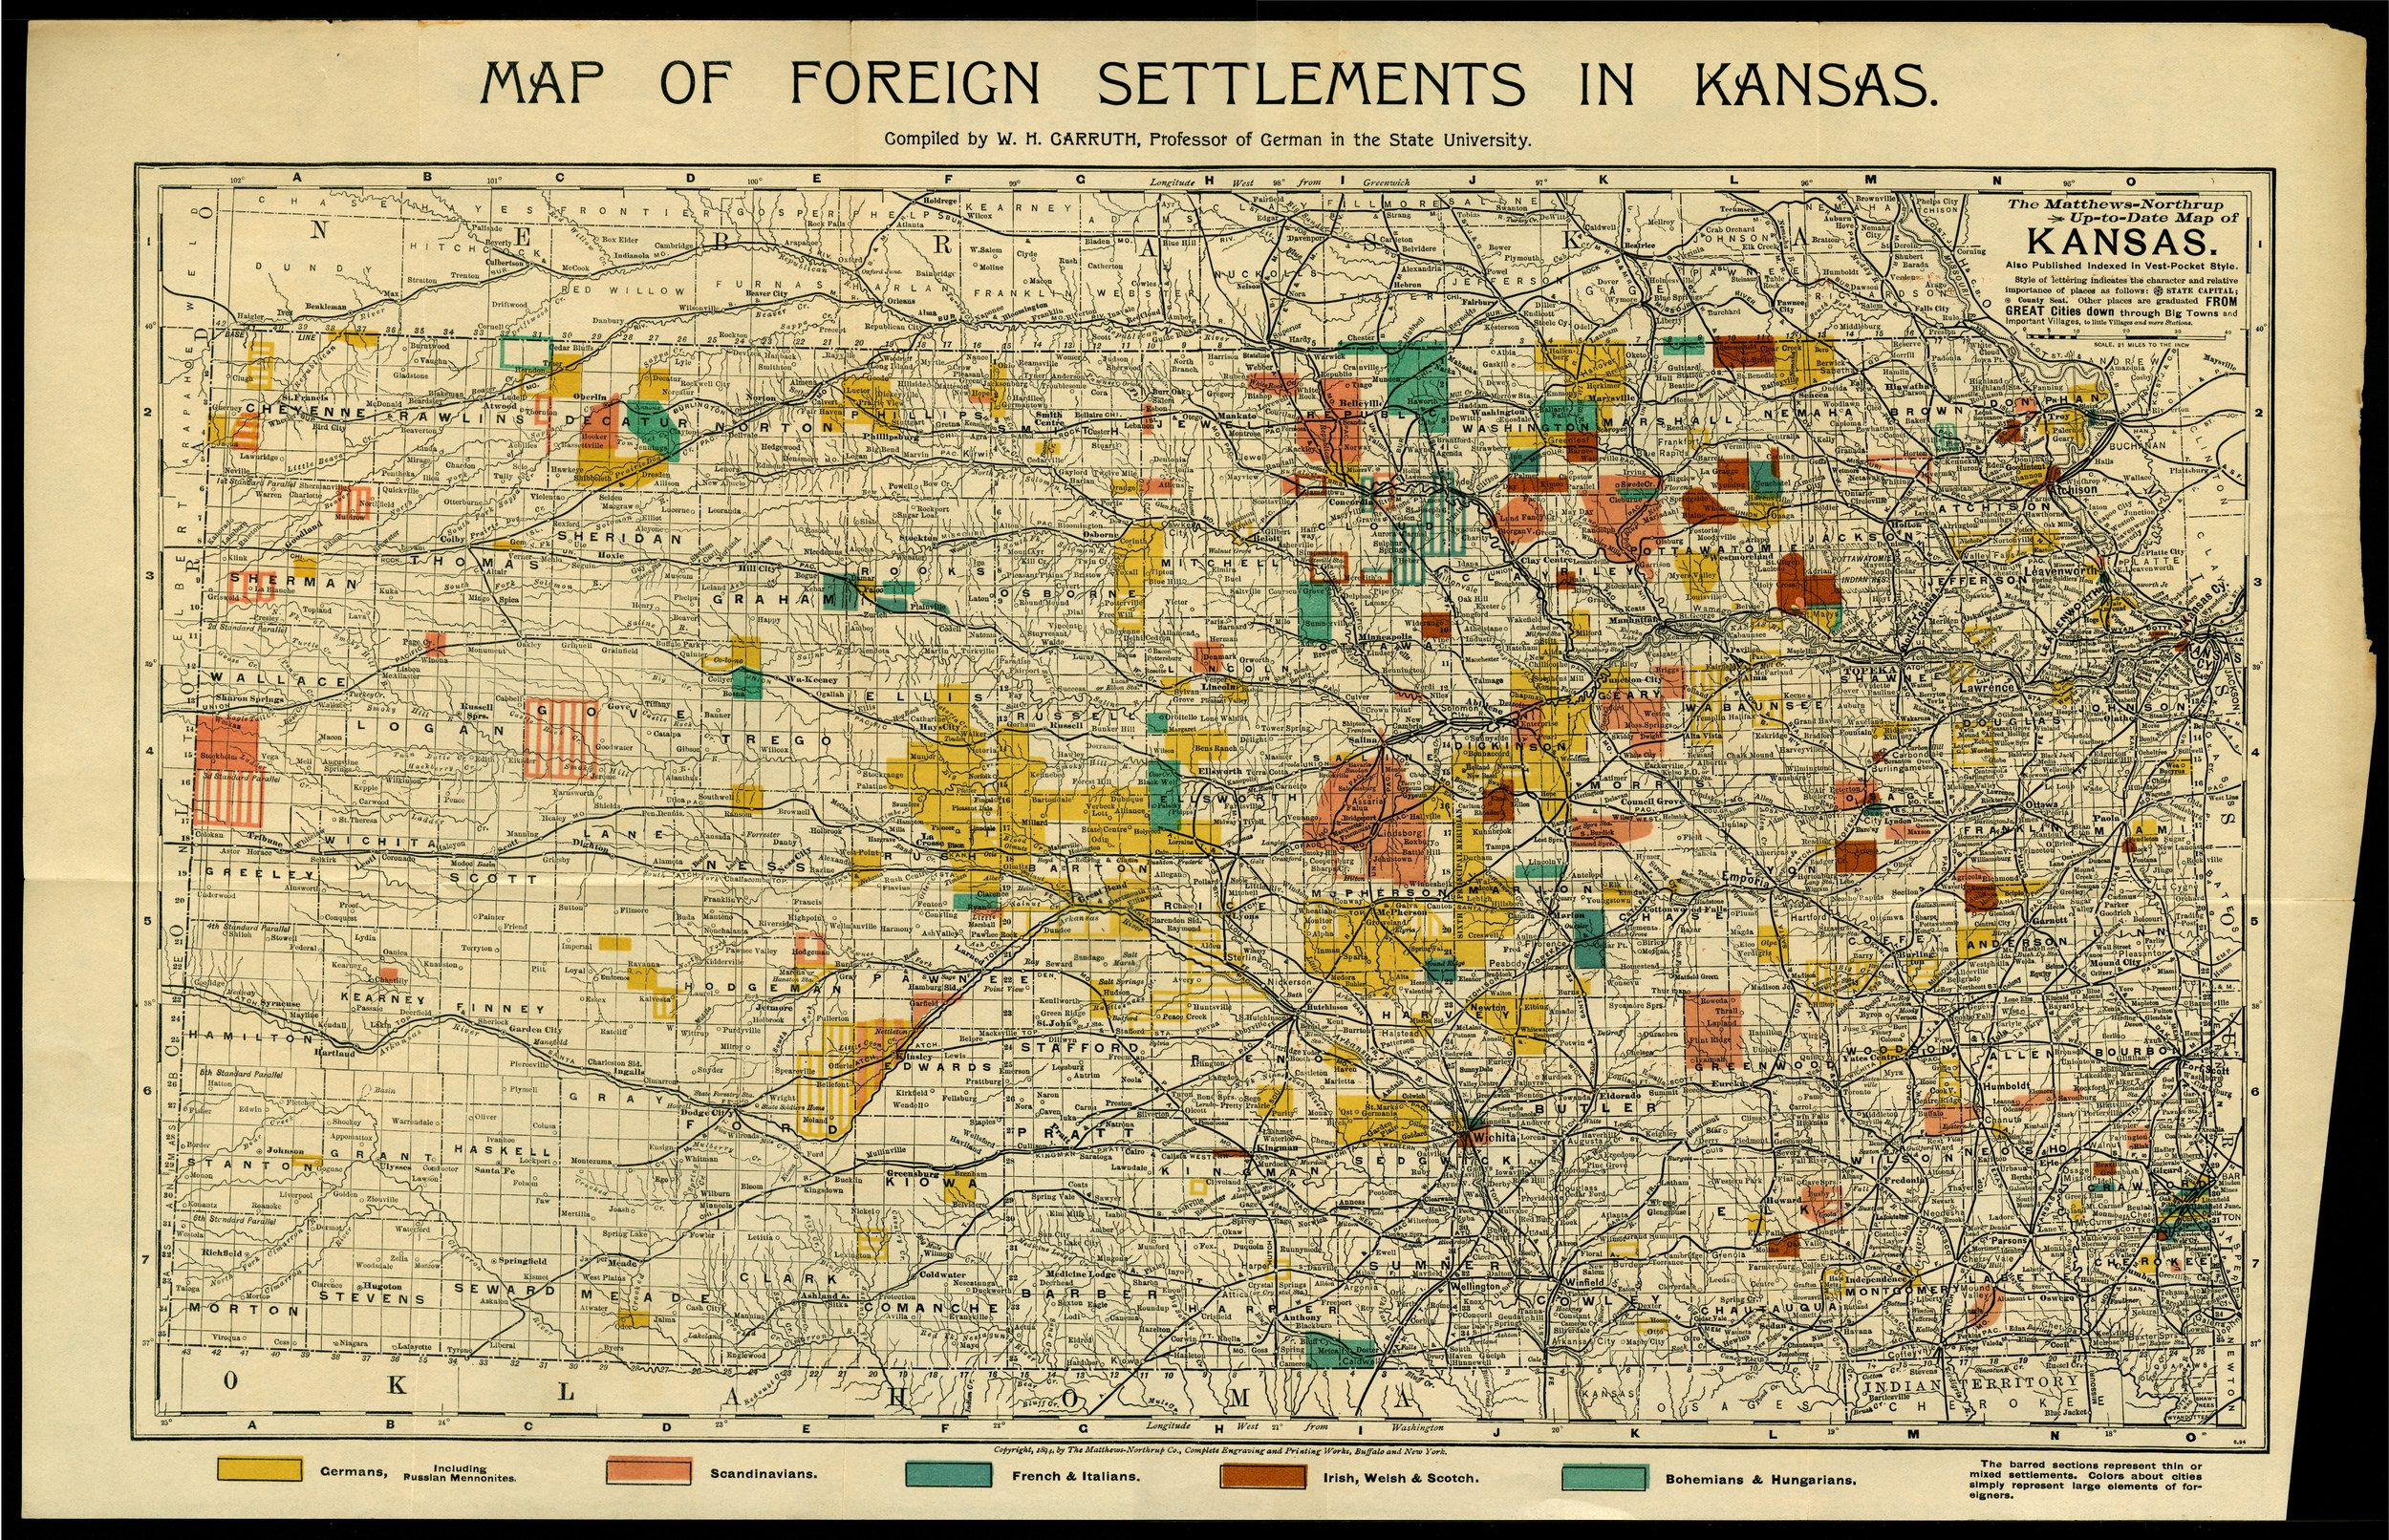 Map of foreign settlements in Kansas